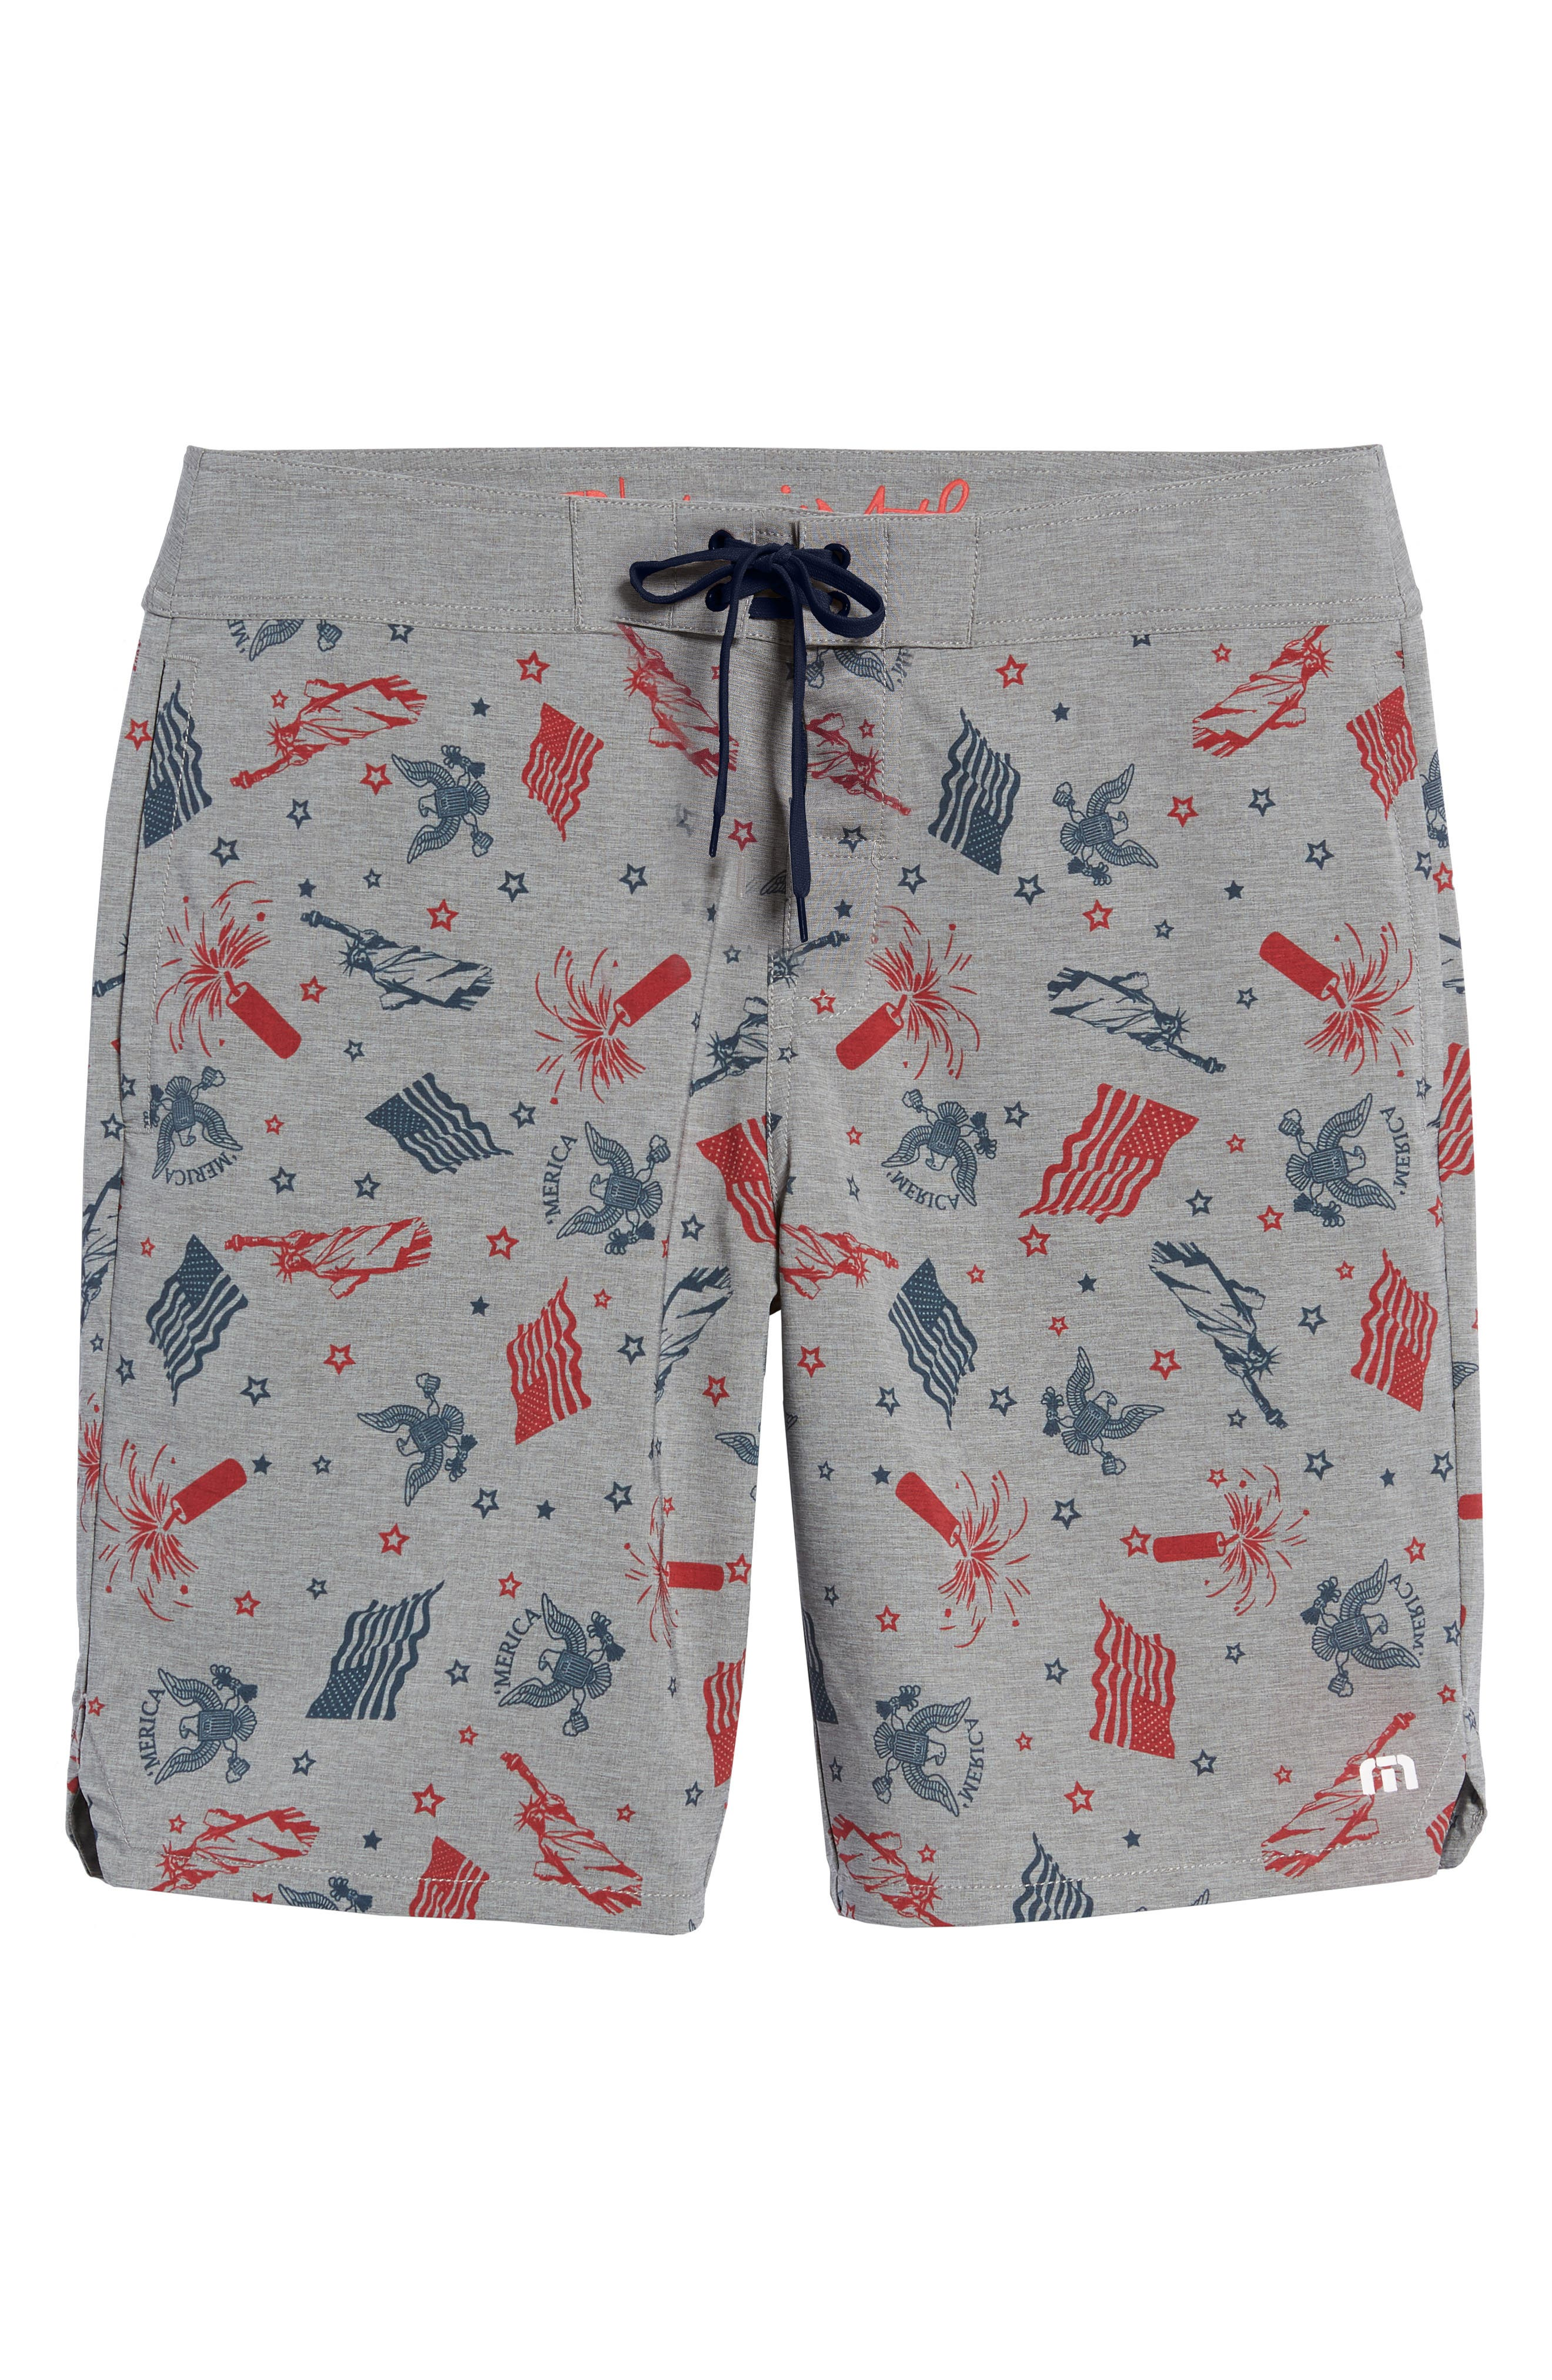 Liberty Swim Trunks,                             Alternate thumbnail 6, color,                             020